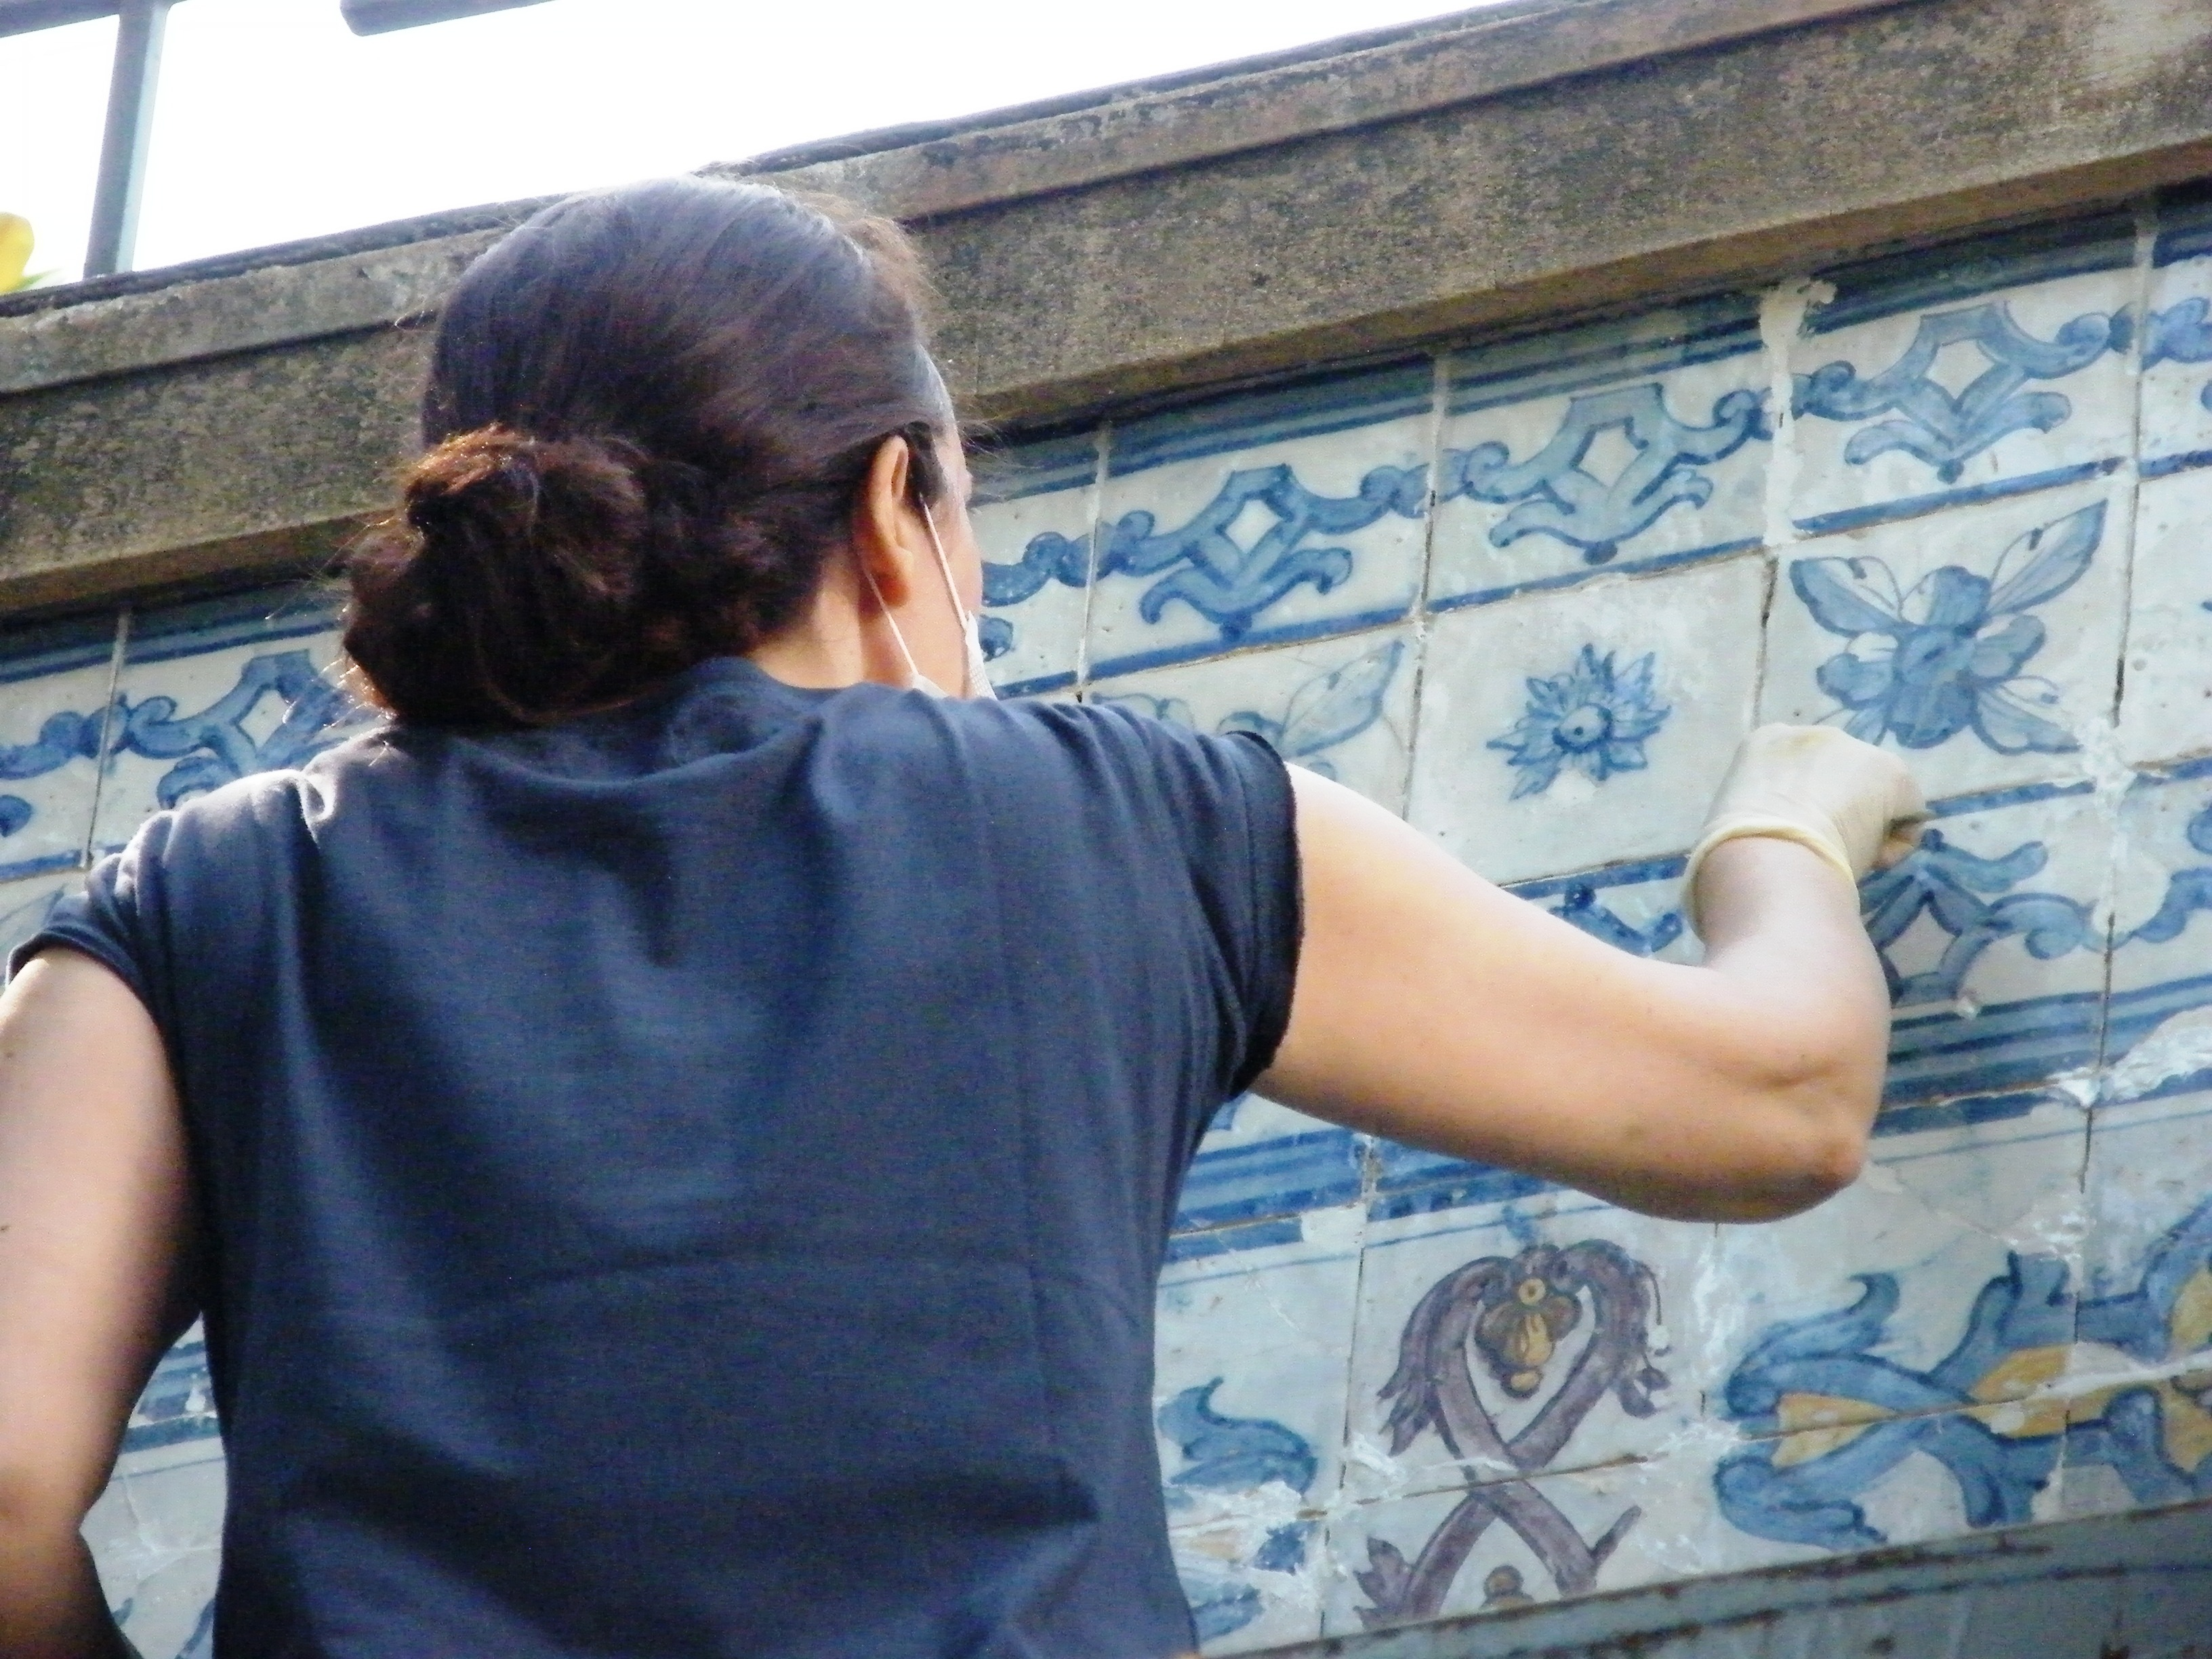 Tile restoration in progess on a panel in the garden of the Museu Nogueira da Silva in Braga